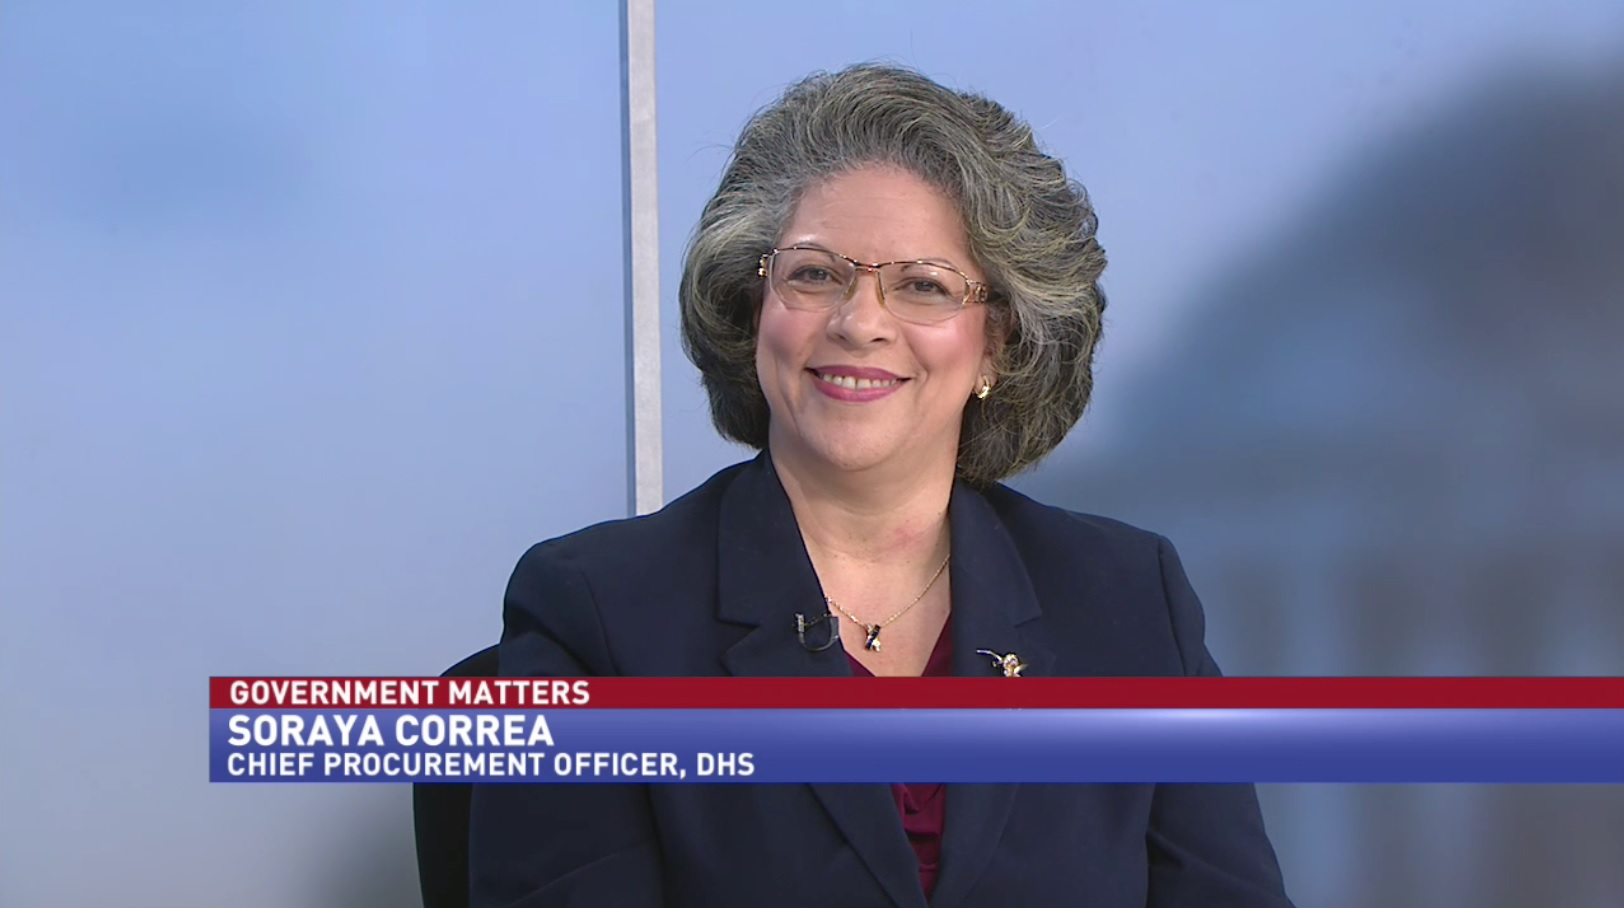 DHS's chief procurement officer Sorya Correa (Part 1)